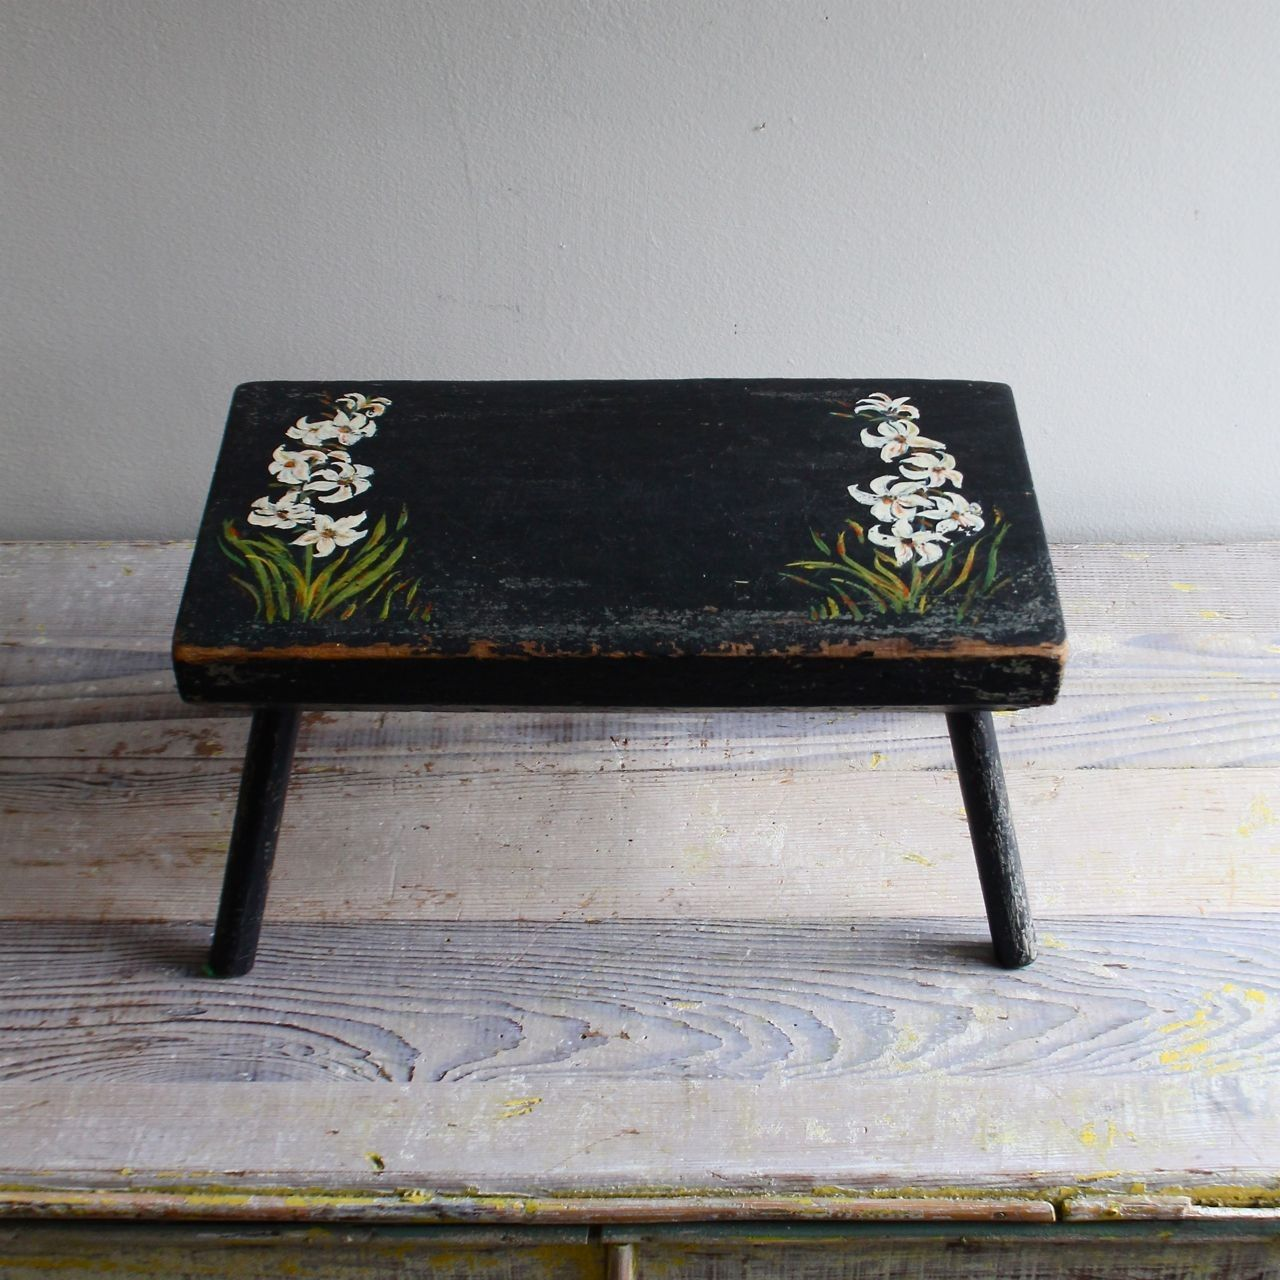 262 Best Old Stools Benches Images On Pinterest: Ethanollie - Vintage Hand-painted Stool